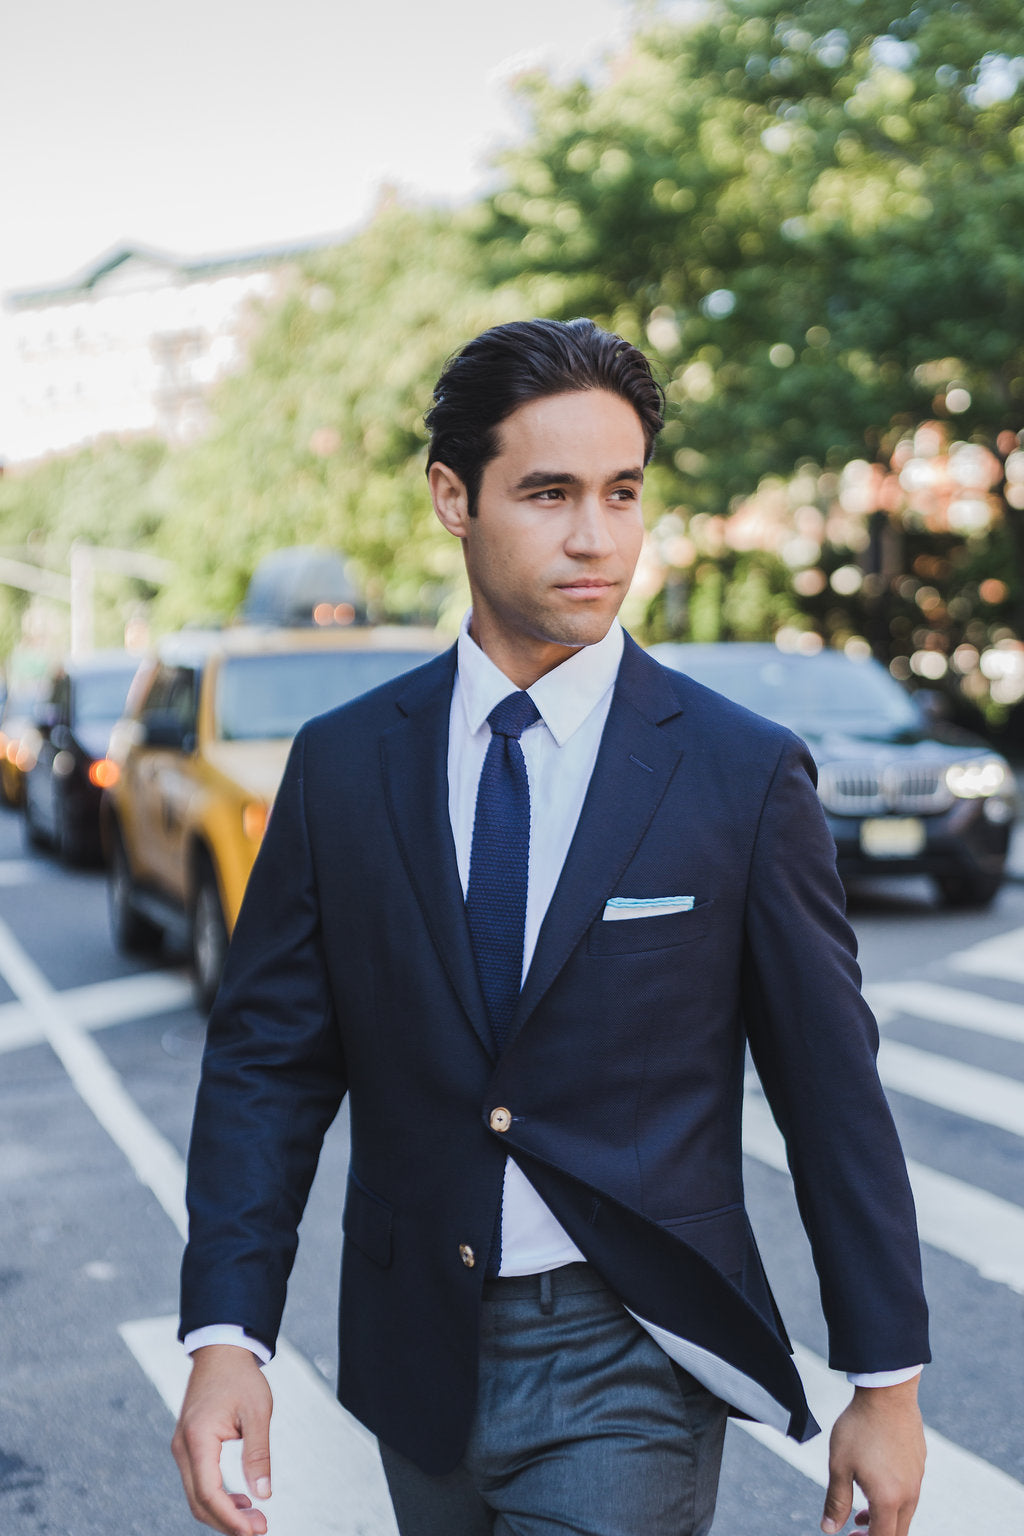 Suits for Short Men: The Ultimate Guide – Peter Manning NYC